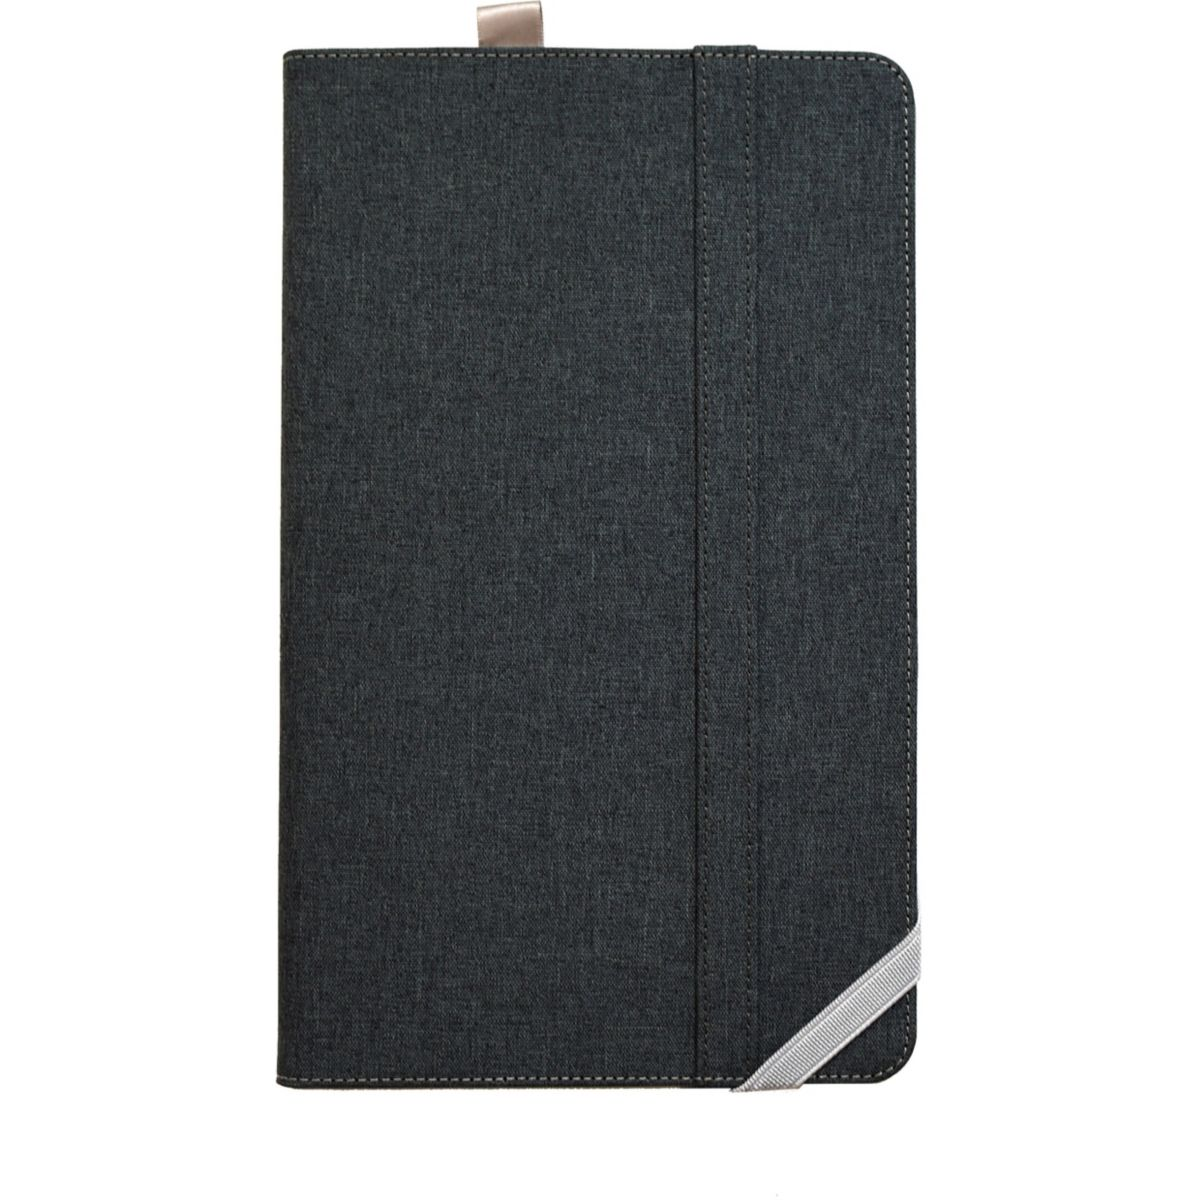 Etui ESSENTIELB Smart Tab 1006 (photo)